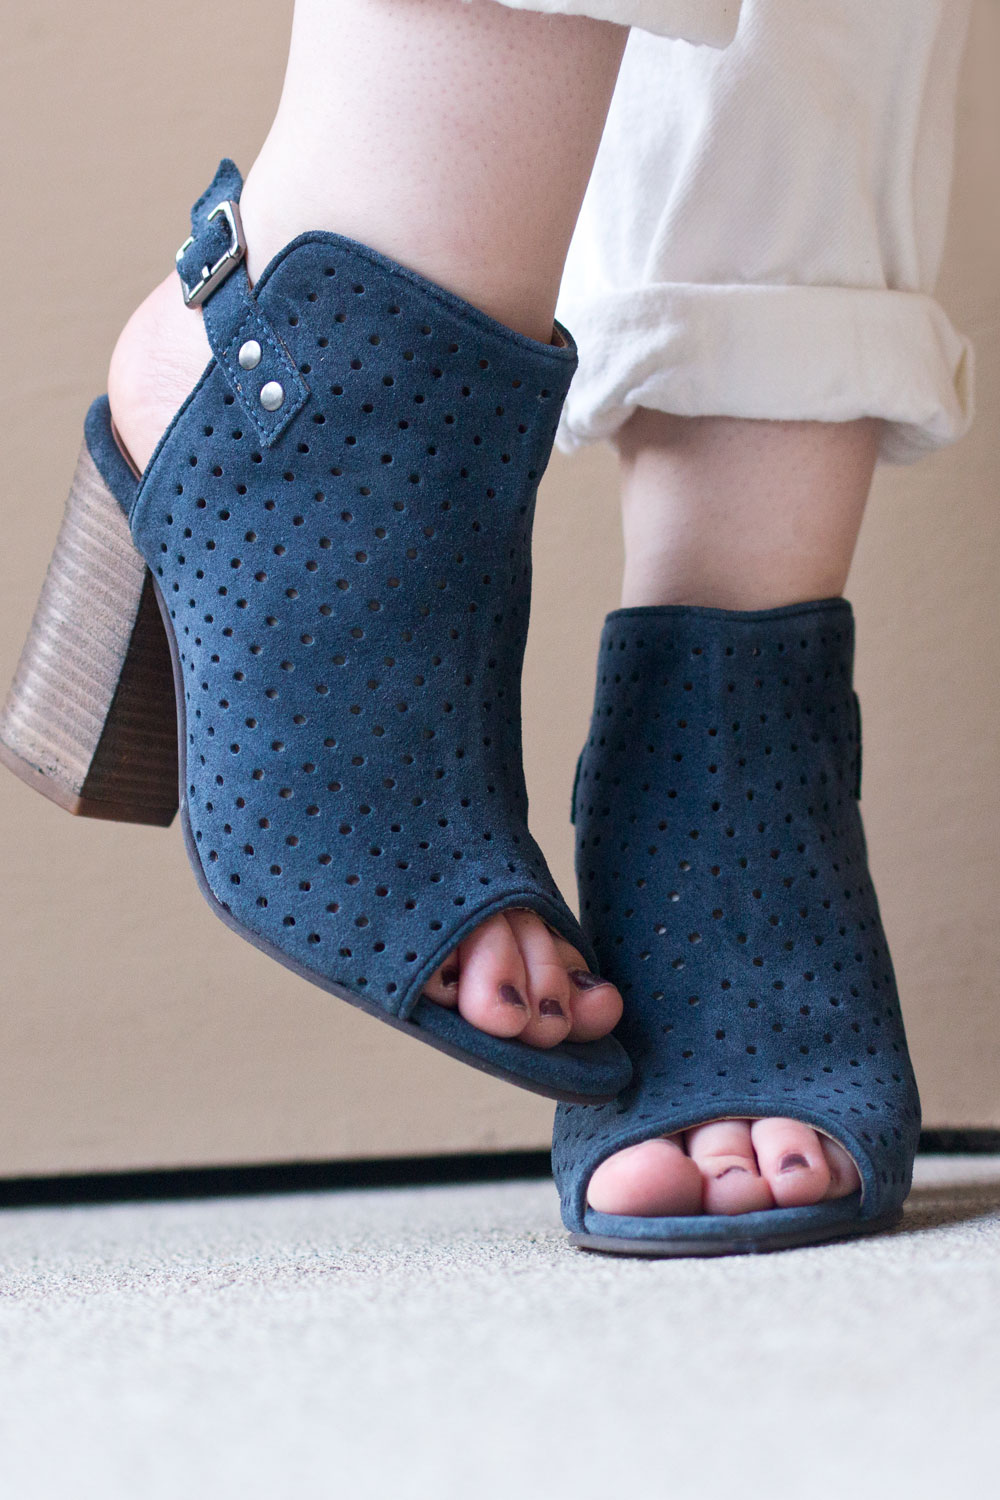 22a2bc5465d Stitch Fix August 2016  Diba Lili Perforated Heel in Navy    Hello Rigby  Seattle